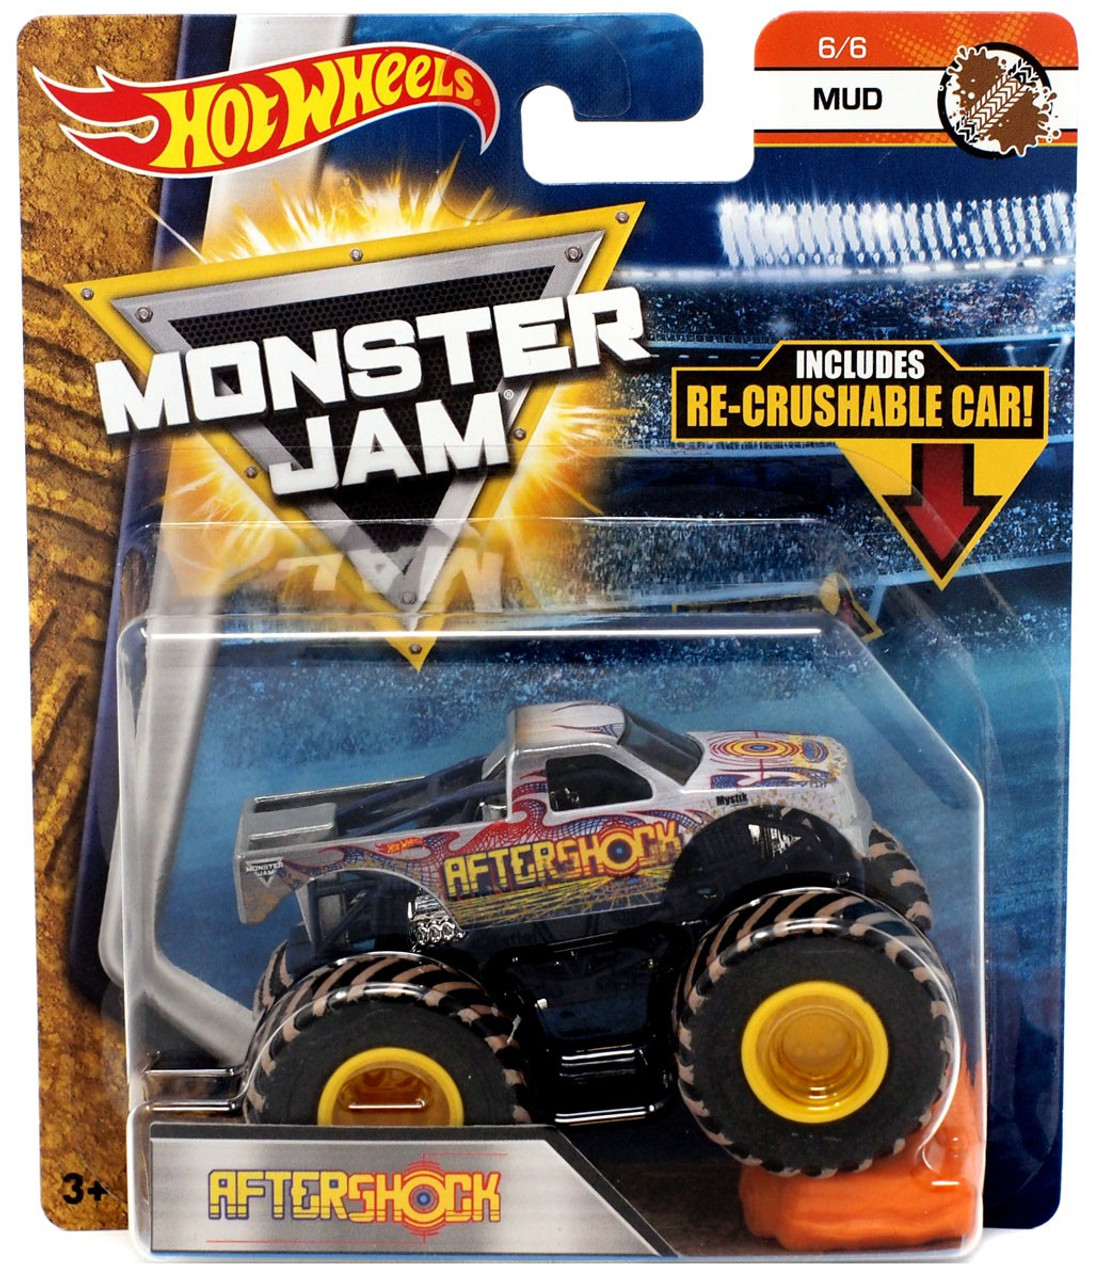 Hot Wheels Monster Jam Aftershock 164 Die Cast Car 66 Mud Mattel